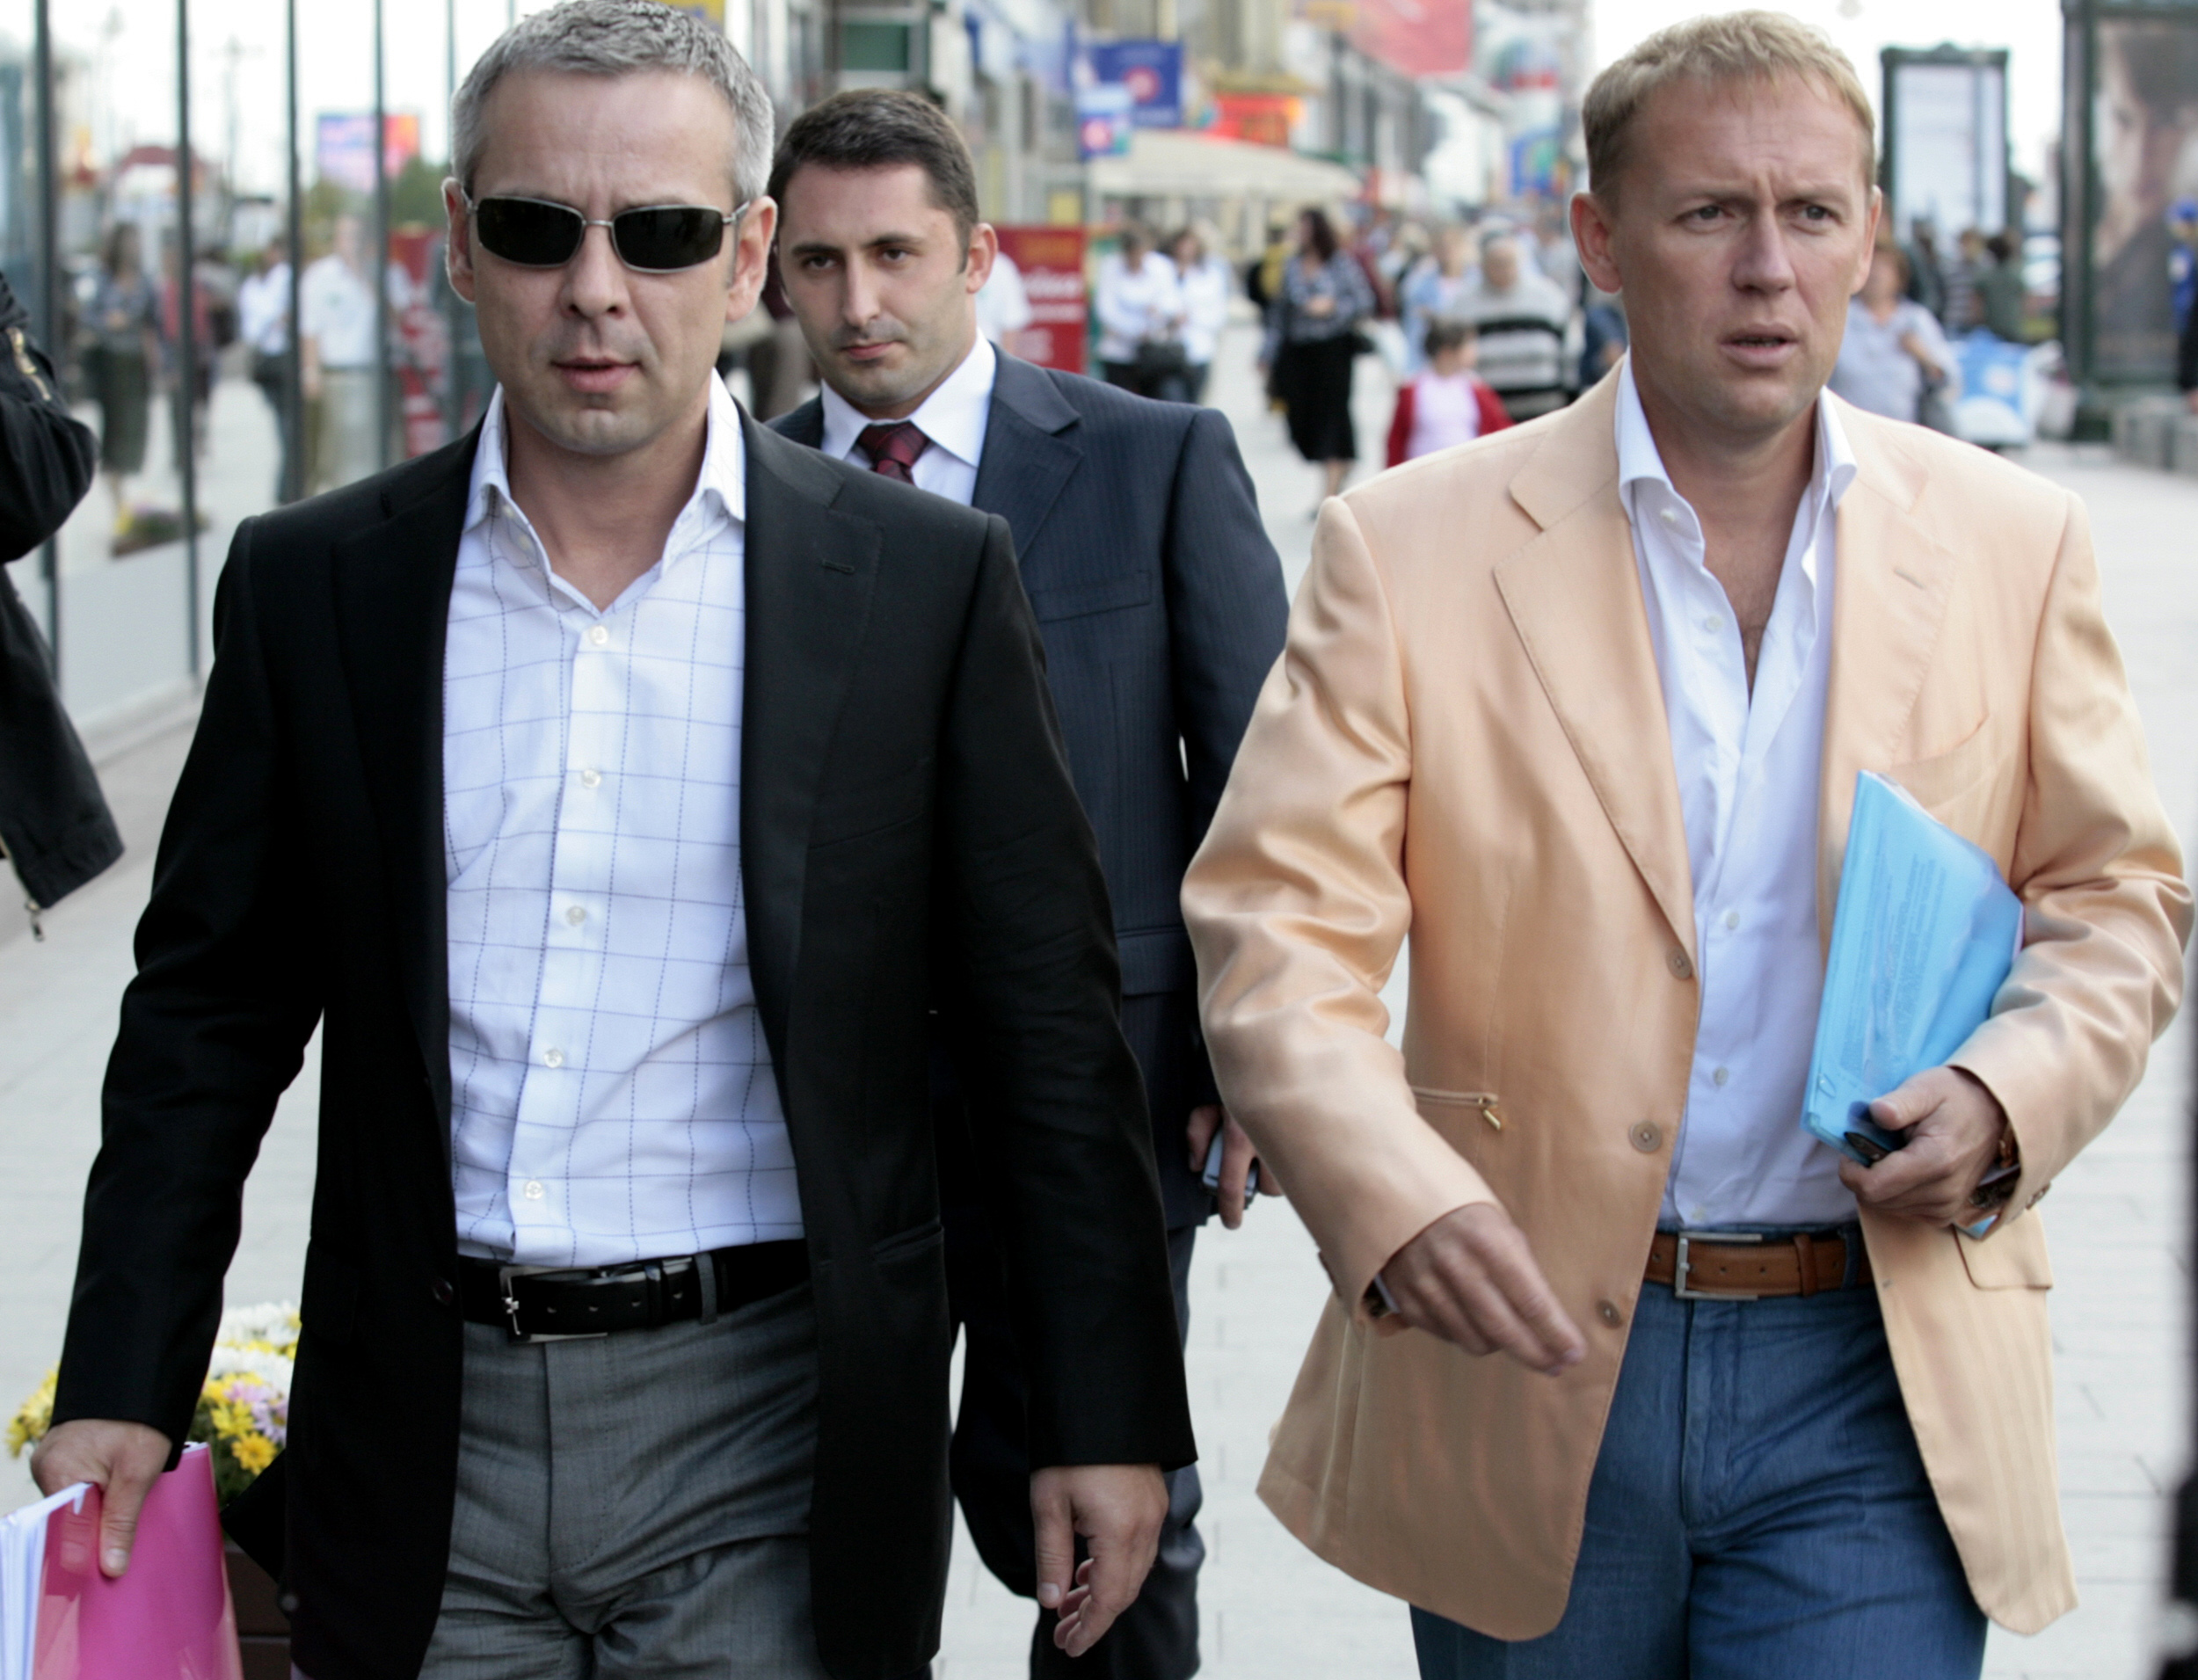 Two ex-KGB agents accused of assassinating Alexander Litvinenko prepare to give a radio interview